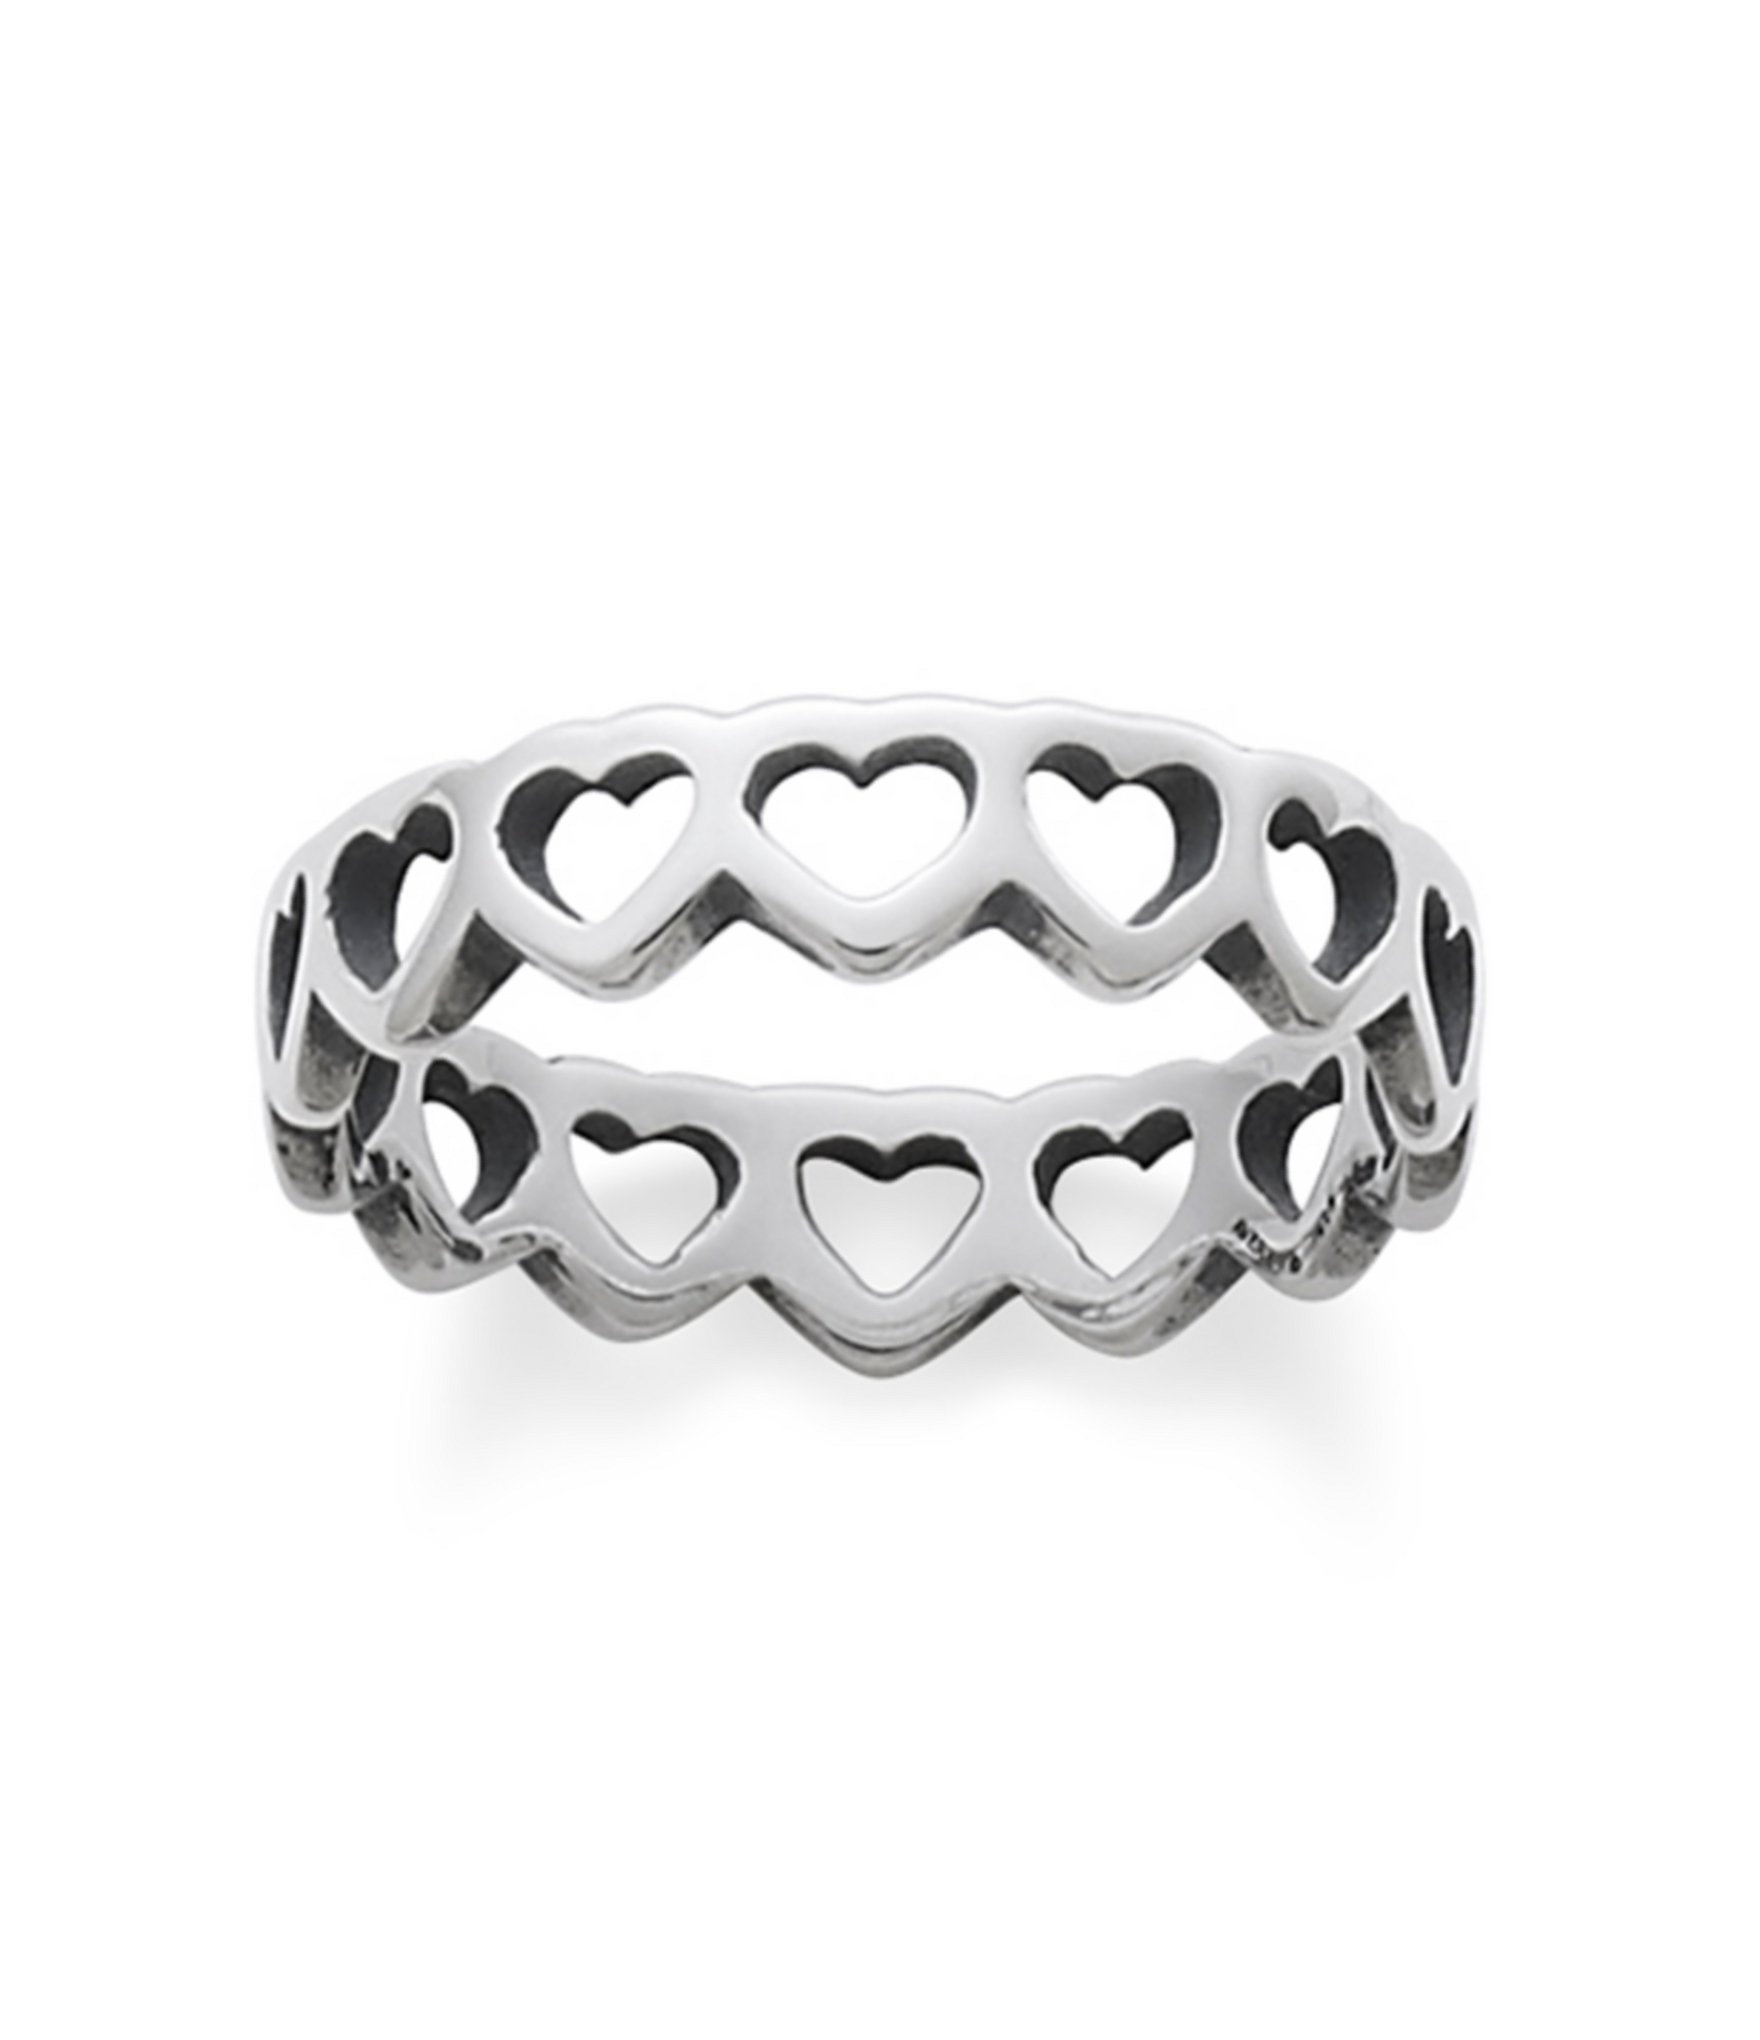 James Avery Tiny Hearts Band Ring | Dillard's Within 2018 Band Of Hearts Rings (View 11 of 25)